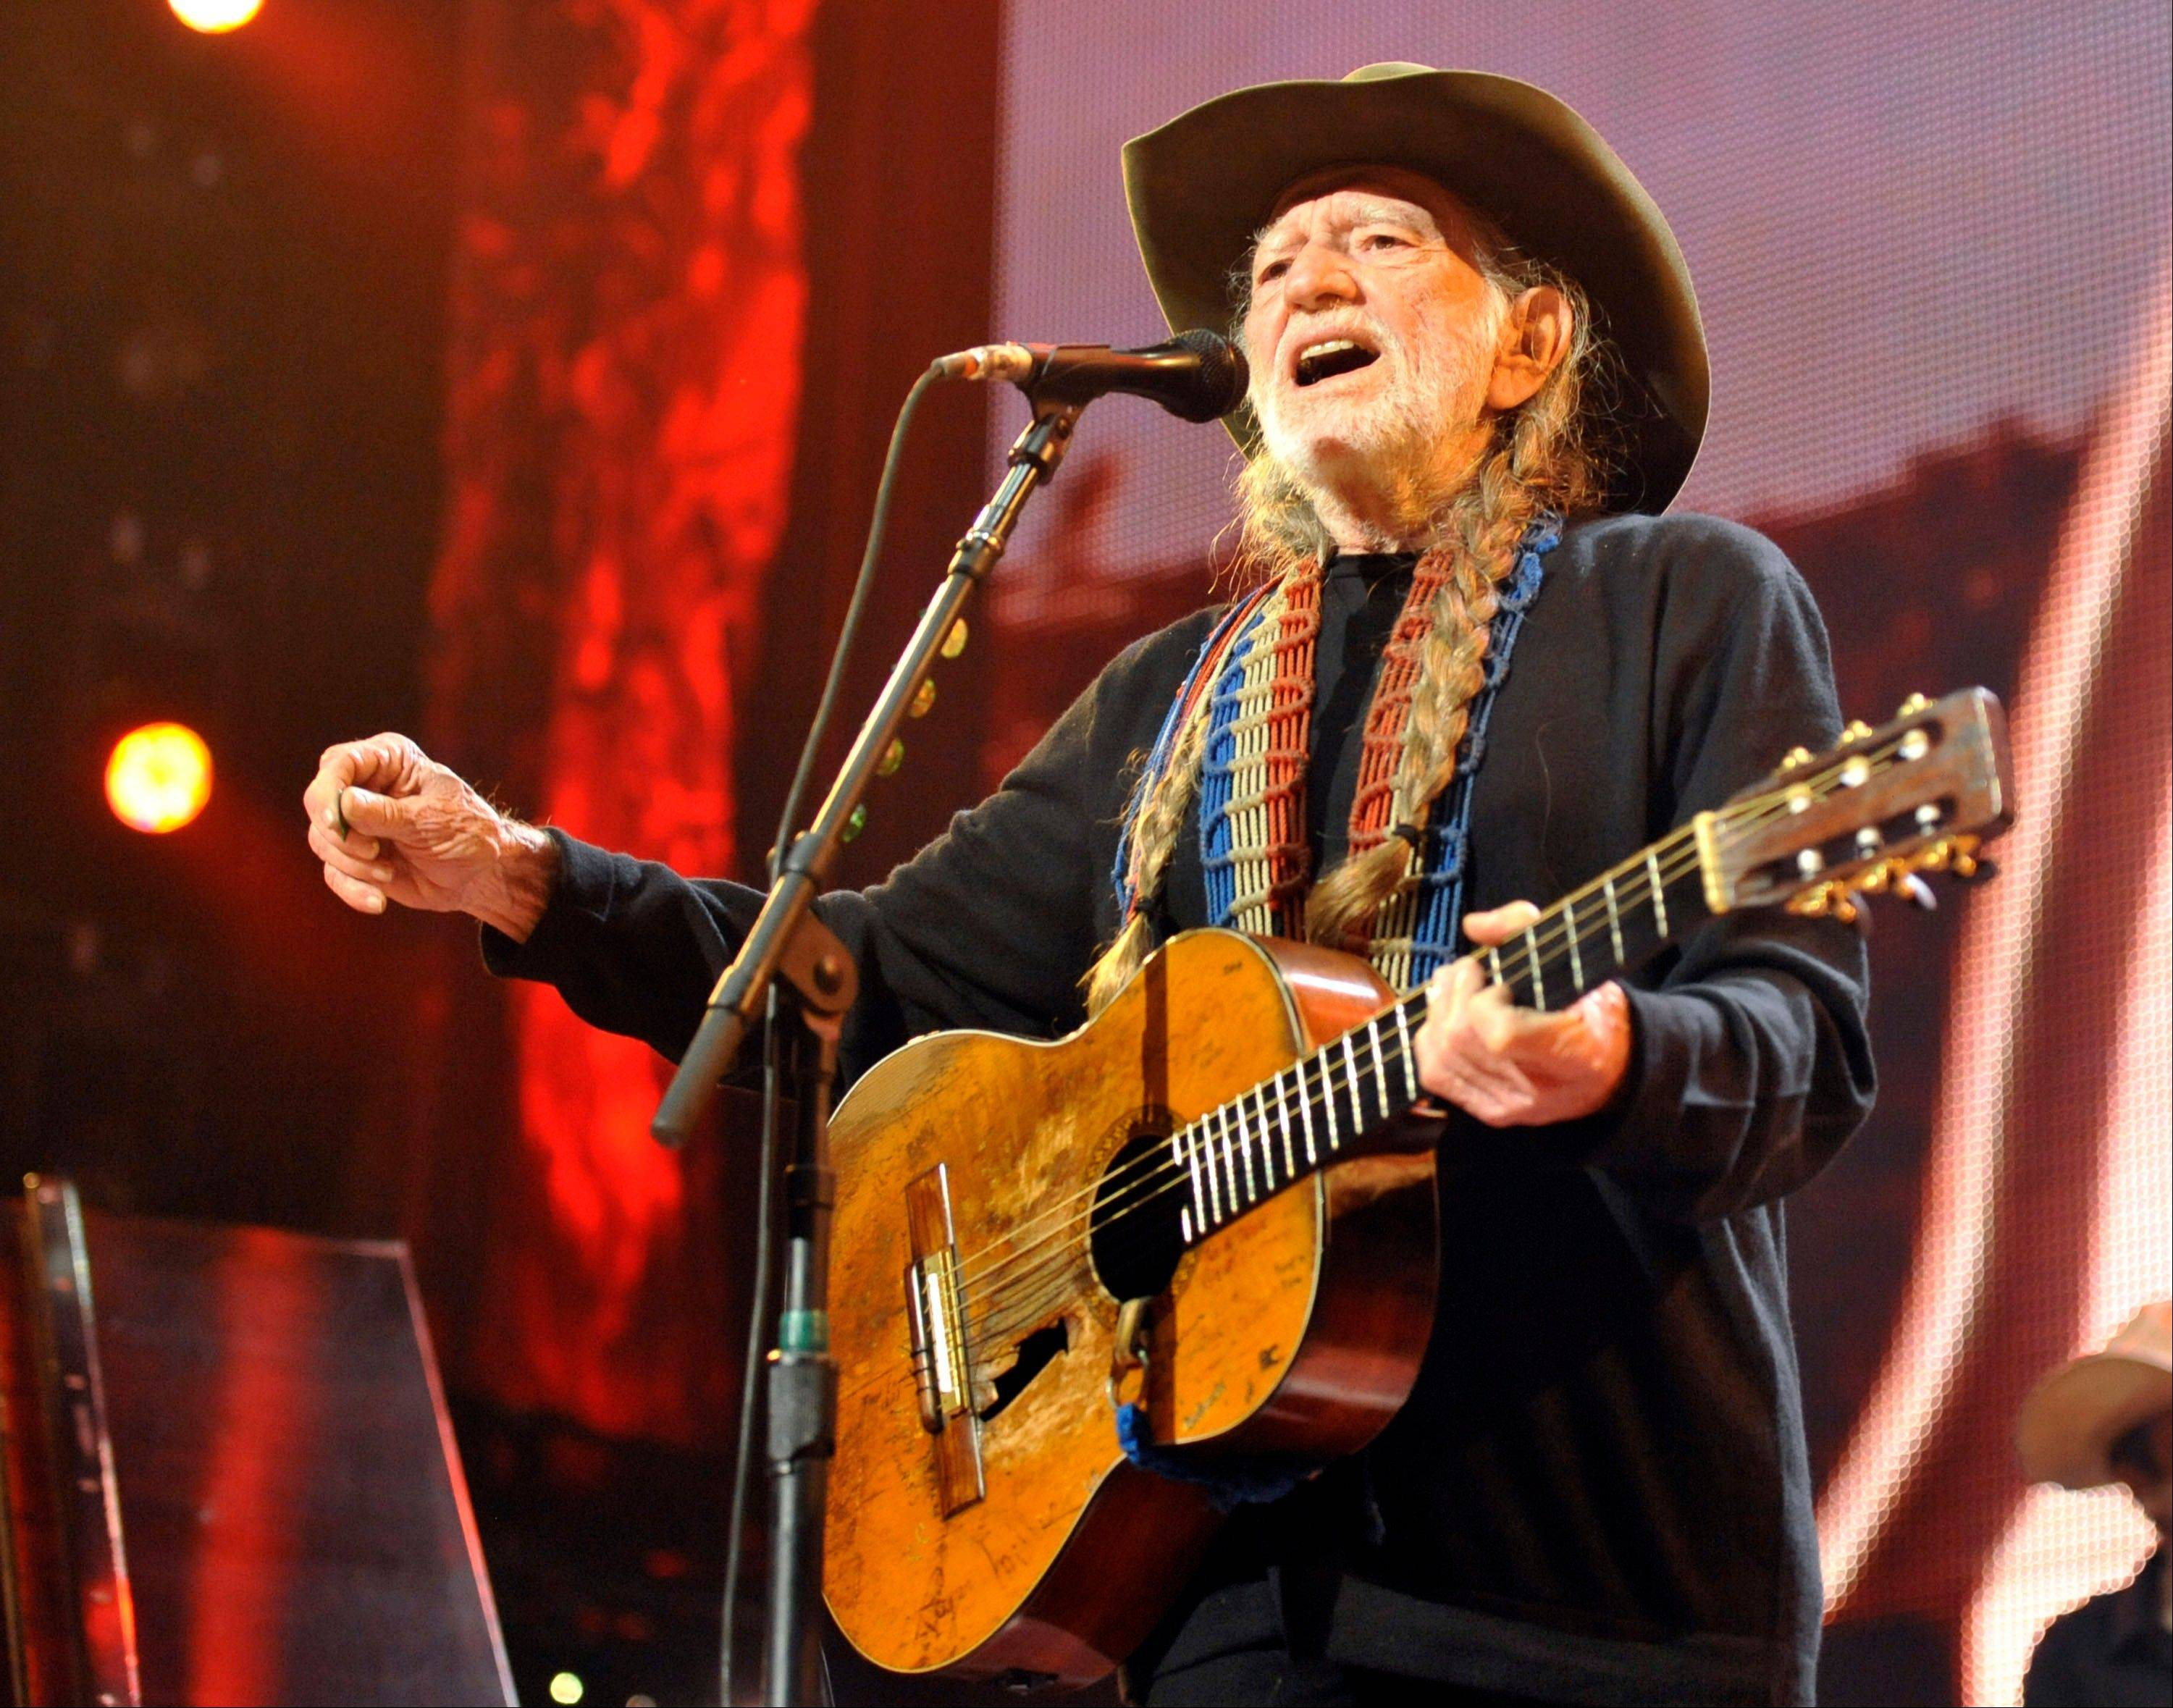 Willie Nelson has recuperated enough from a shoulder injury that he�s able to keep his evening slot at the Zac Brown Band�s Southern Ground Music & Food Festival on Saturday, Sept. 28, 2013, in Nashville, Tenn. Concerts in Michigan, Indiana and Illinois are being rescheduled.